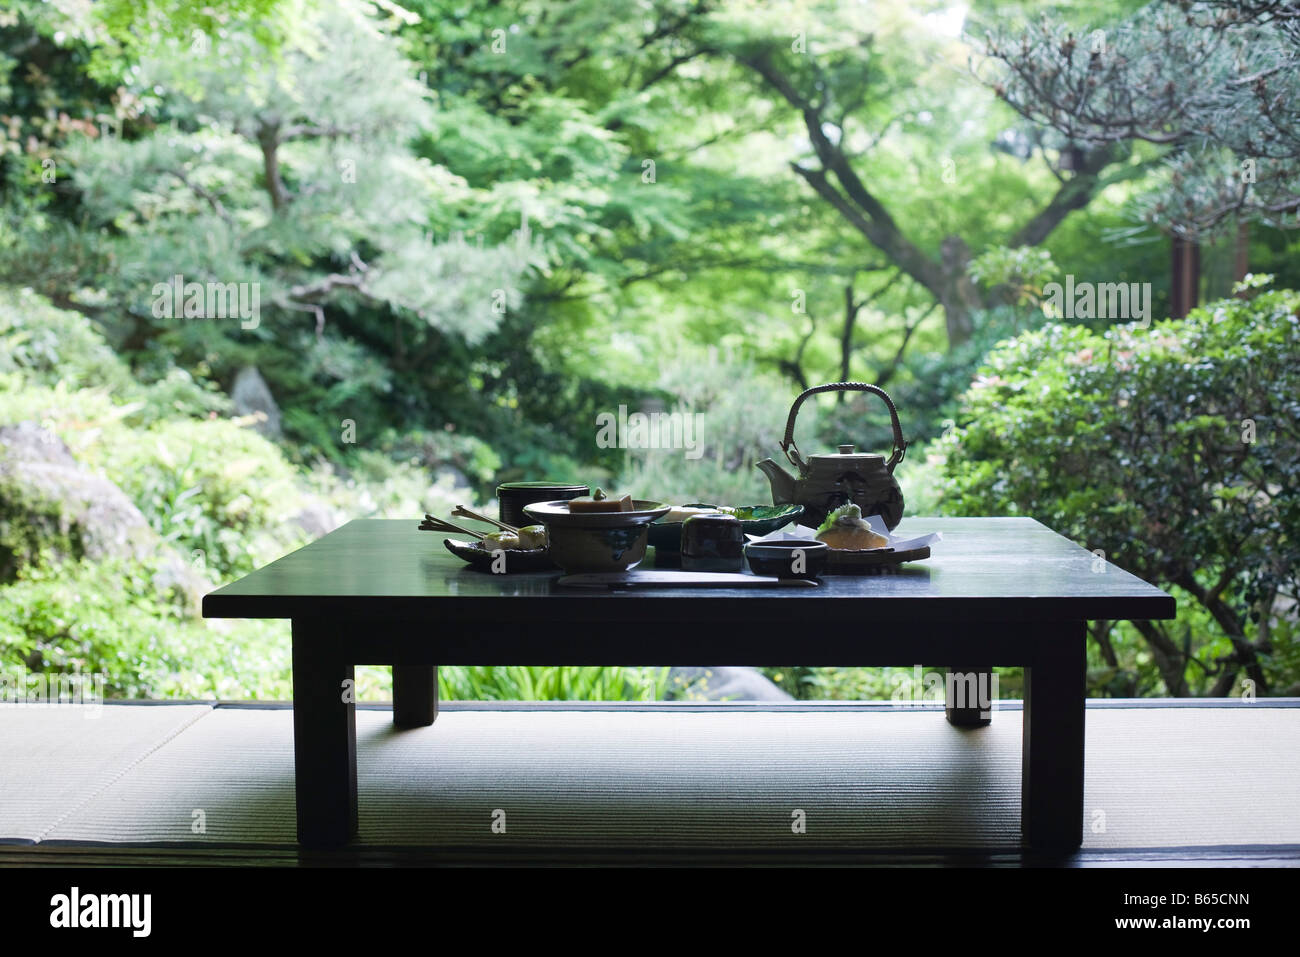 Traditional Japanese meal on table outdoors - Stock Image